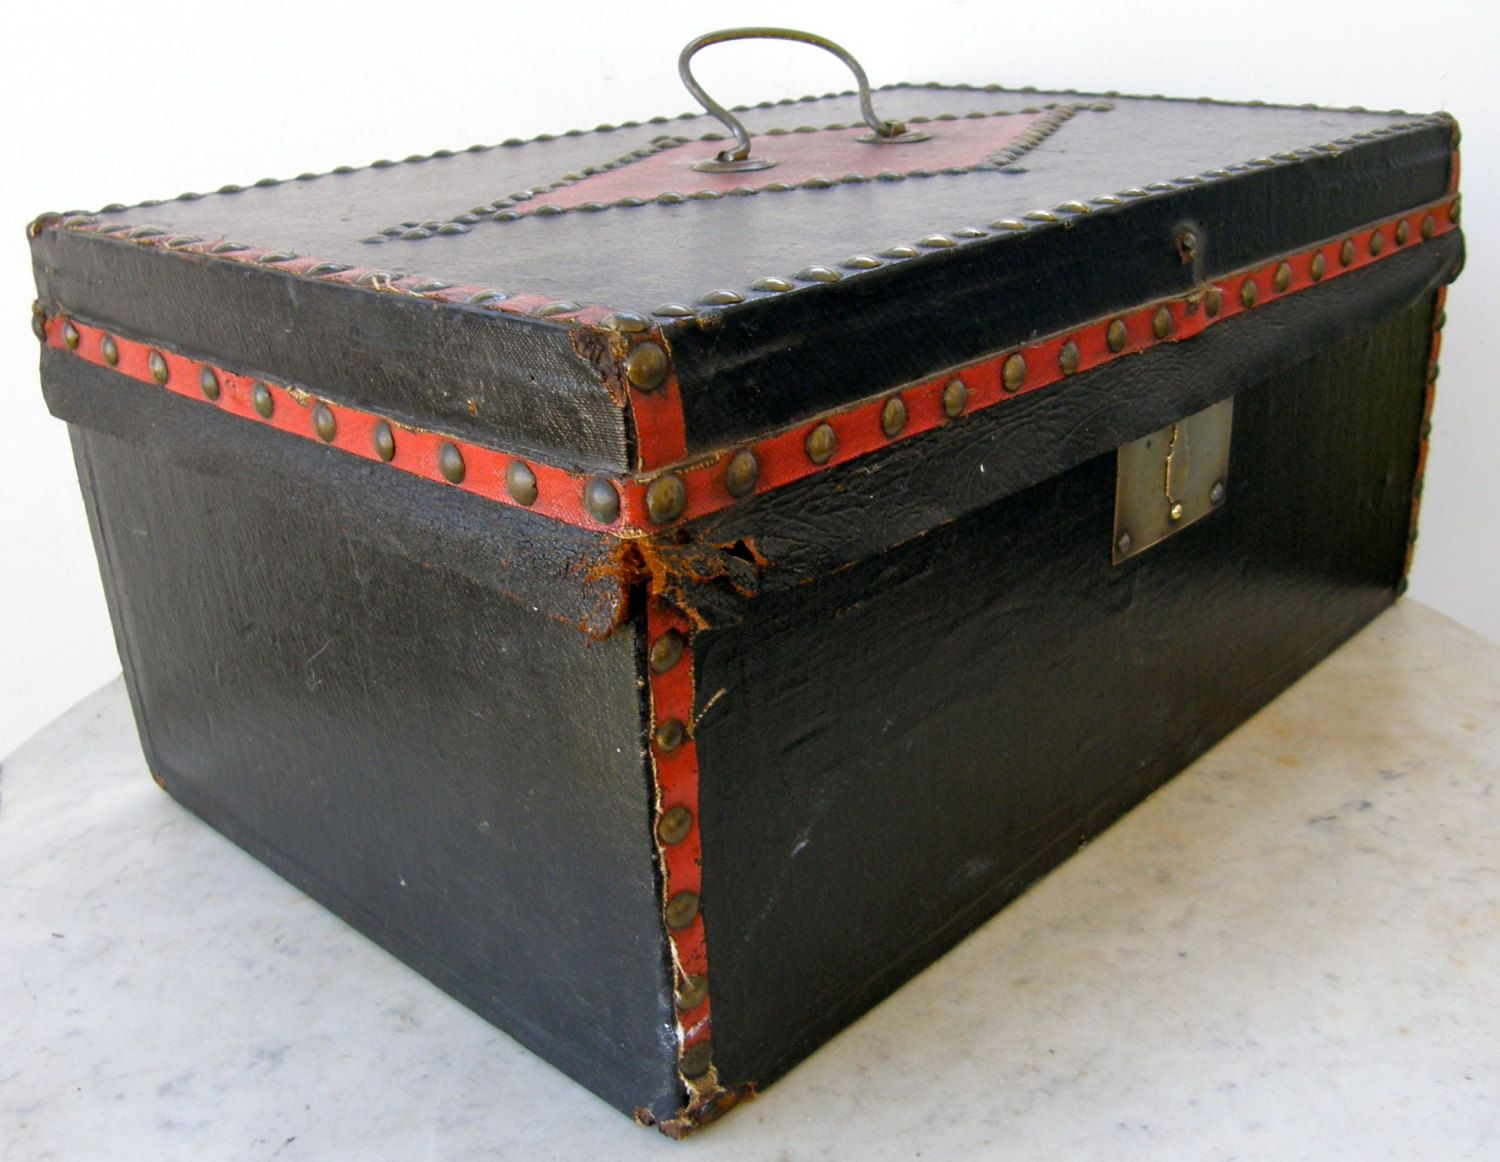 ANTIQUE DOCUMENT BOX Wood w/ Black & Red Canvas Covering Brass Bullet Edging Original Brass Hardware Signed Philadelphia Patent Date 1850s by OnceUpnTym on Etsy